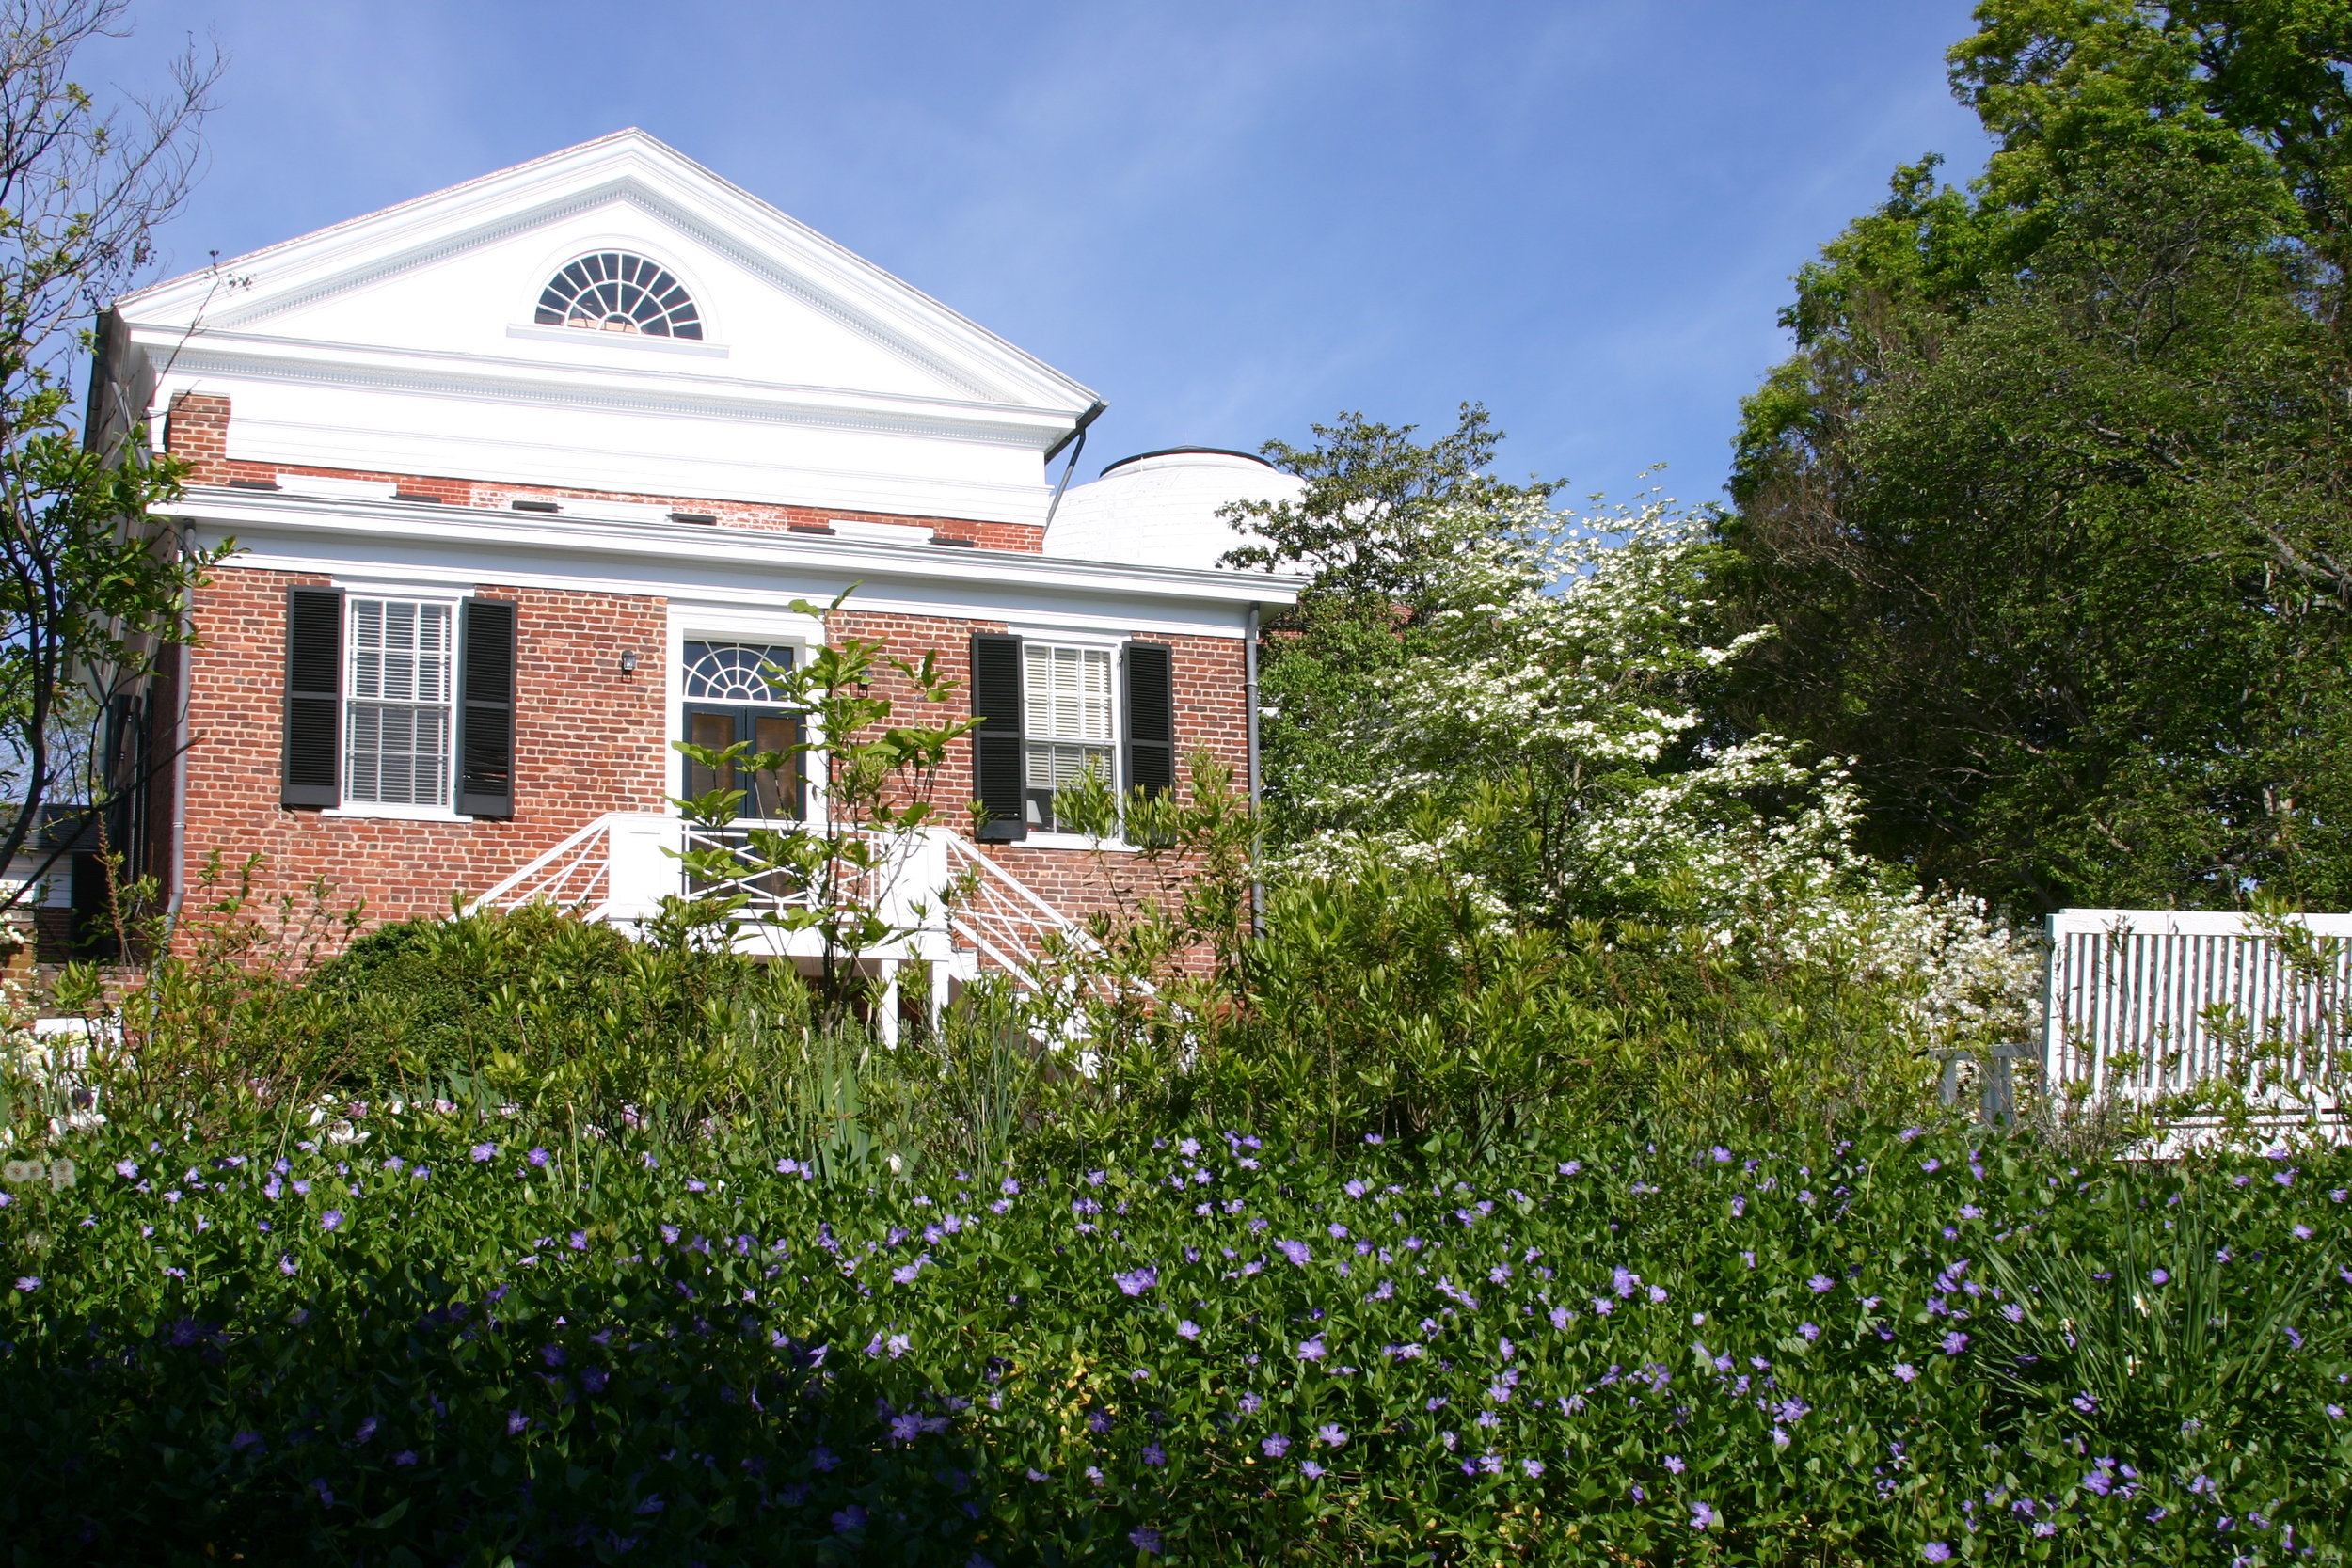 University of Virginia, April 2012, Photo Credit: Kate Gallery